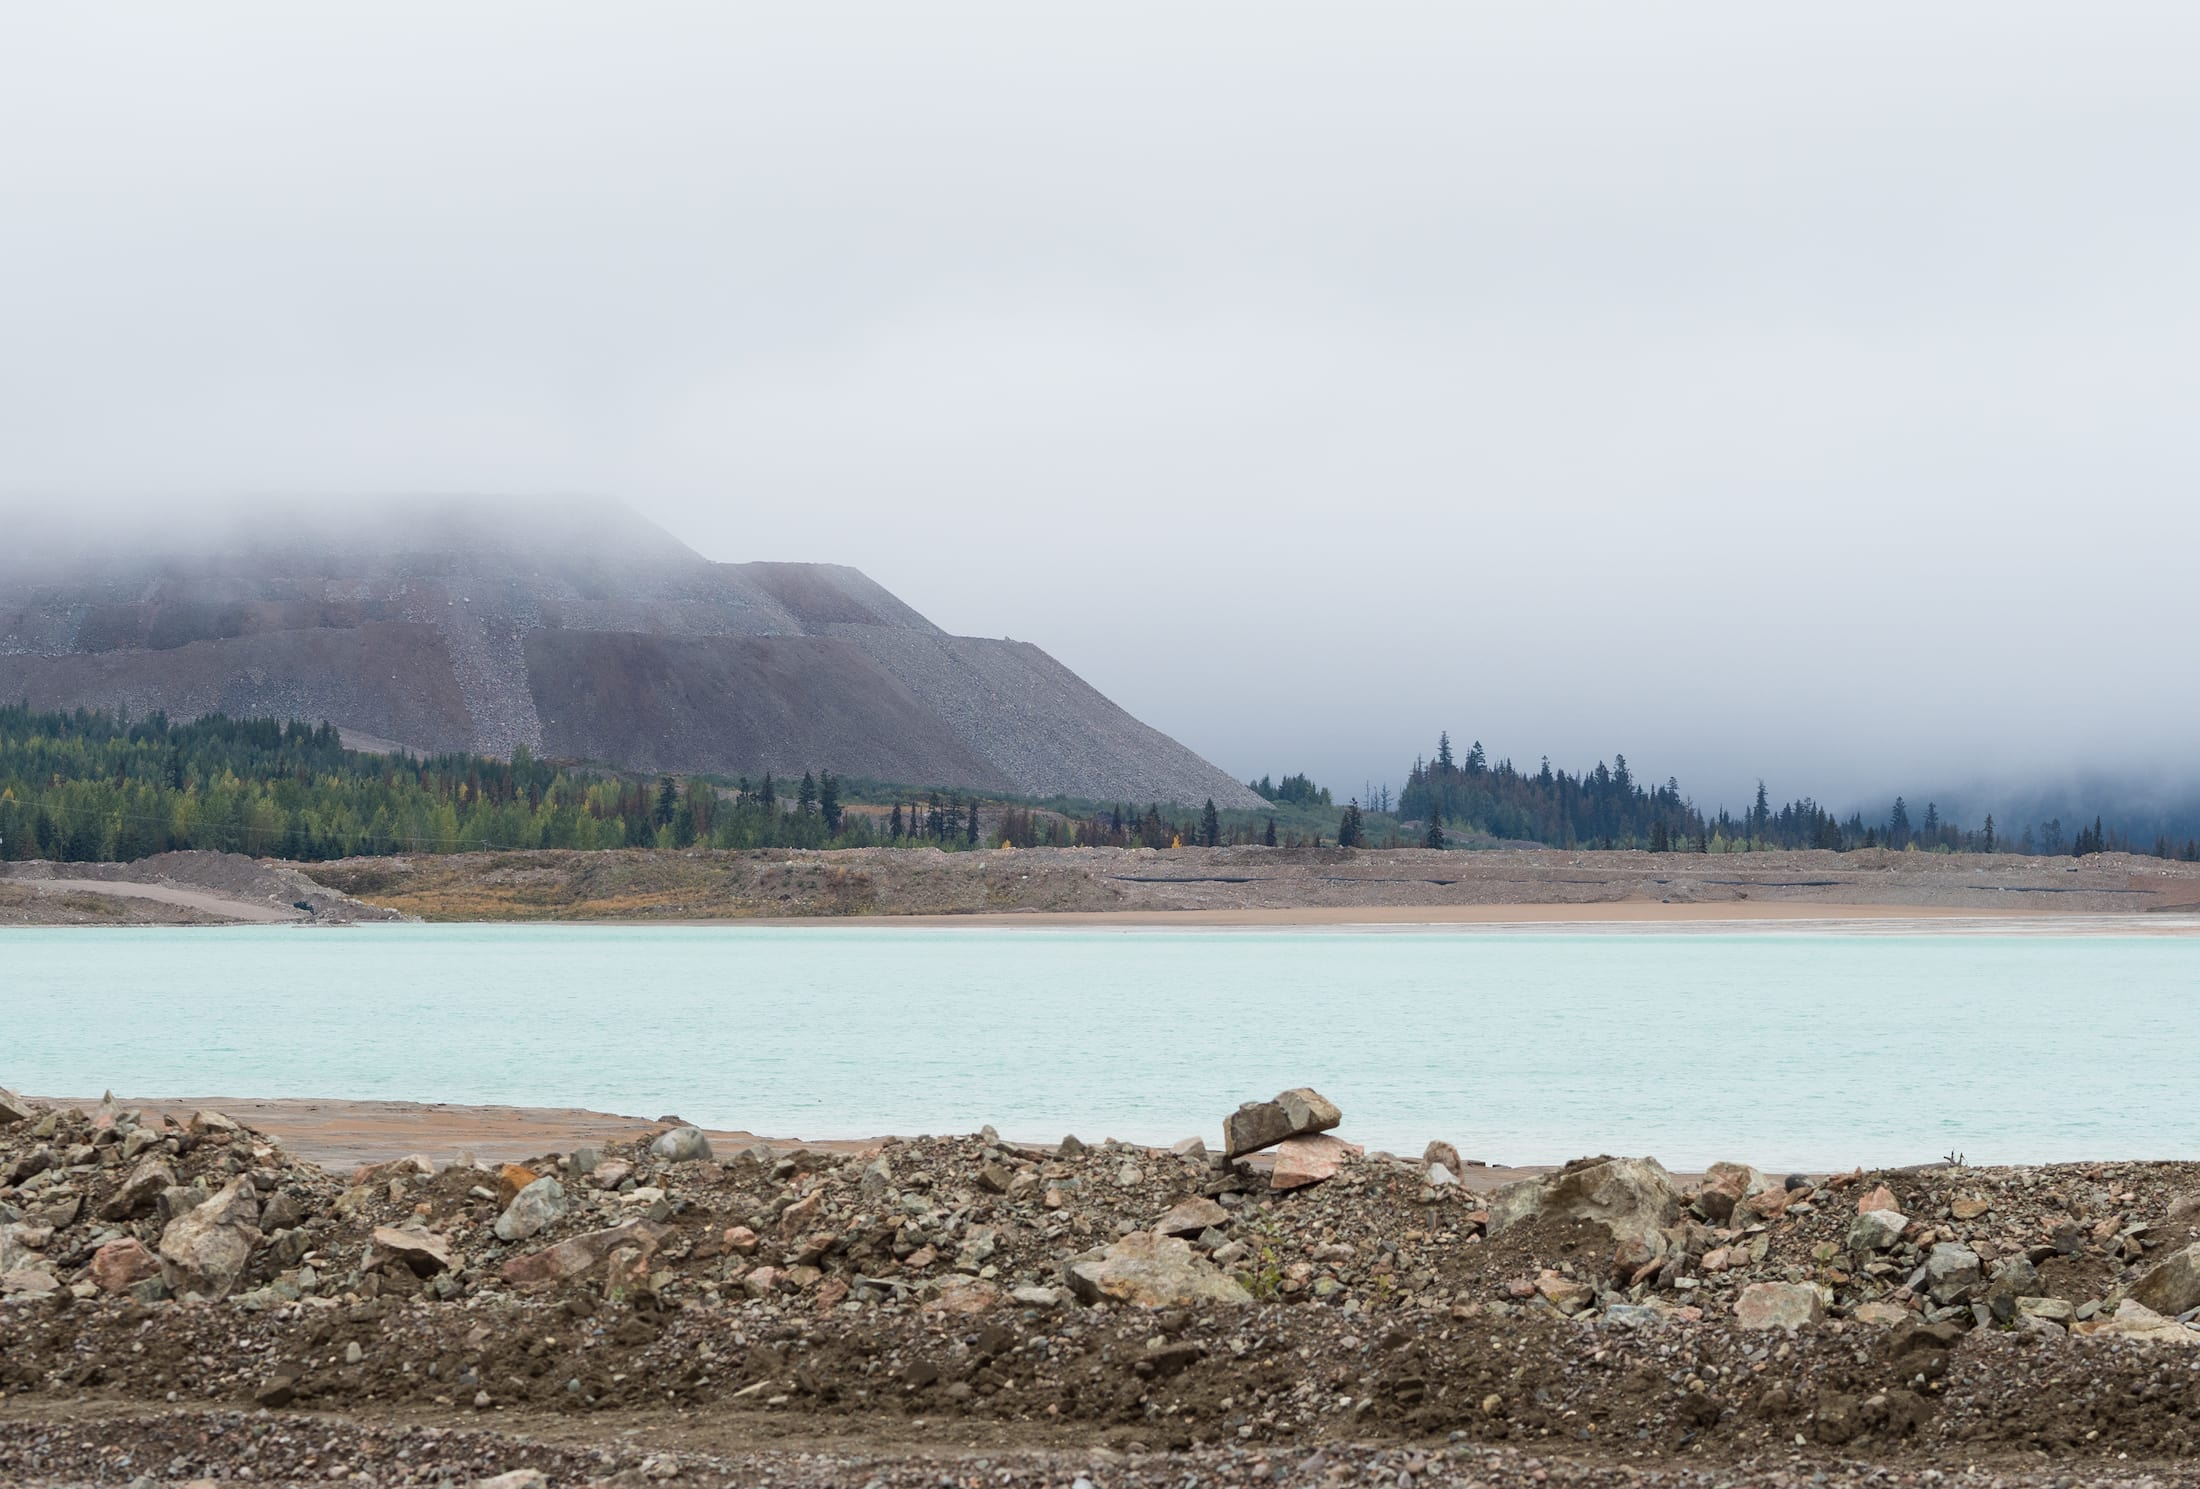 Mount Polley Mine's tailings pond